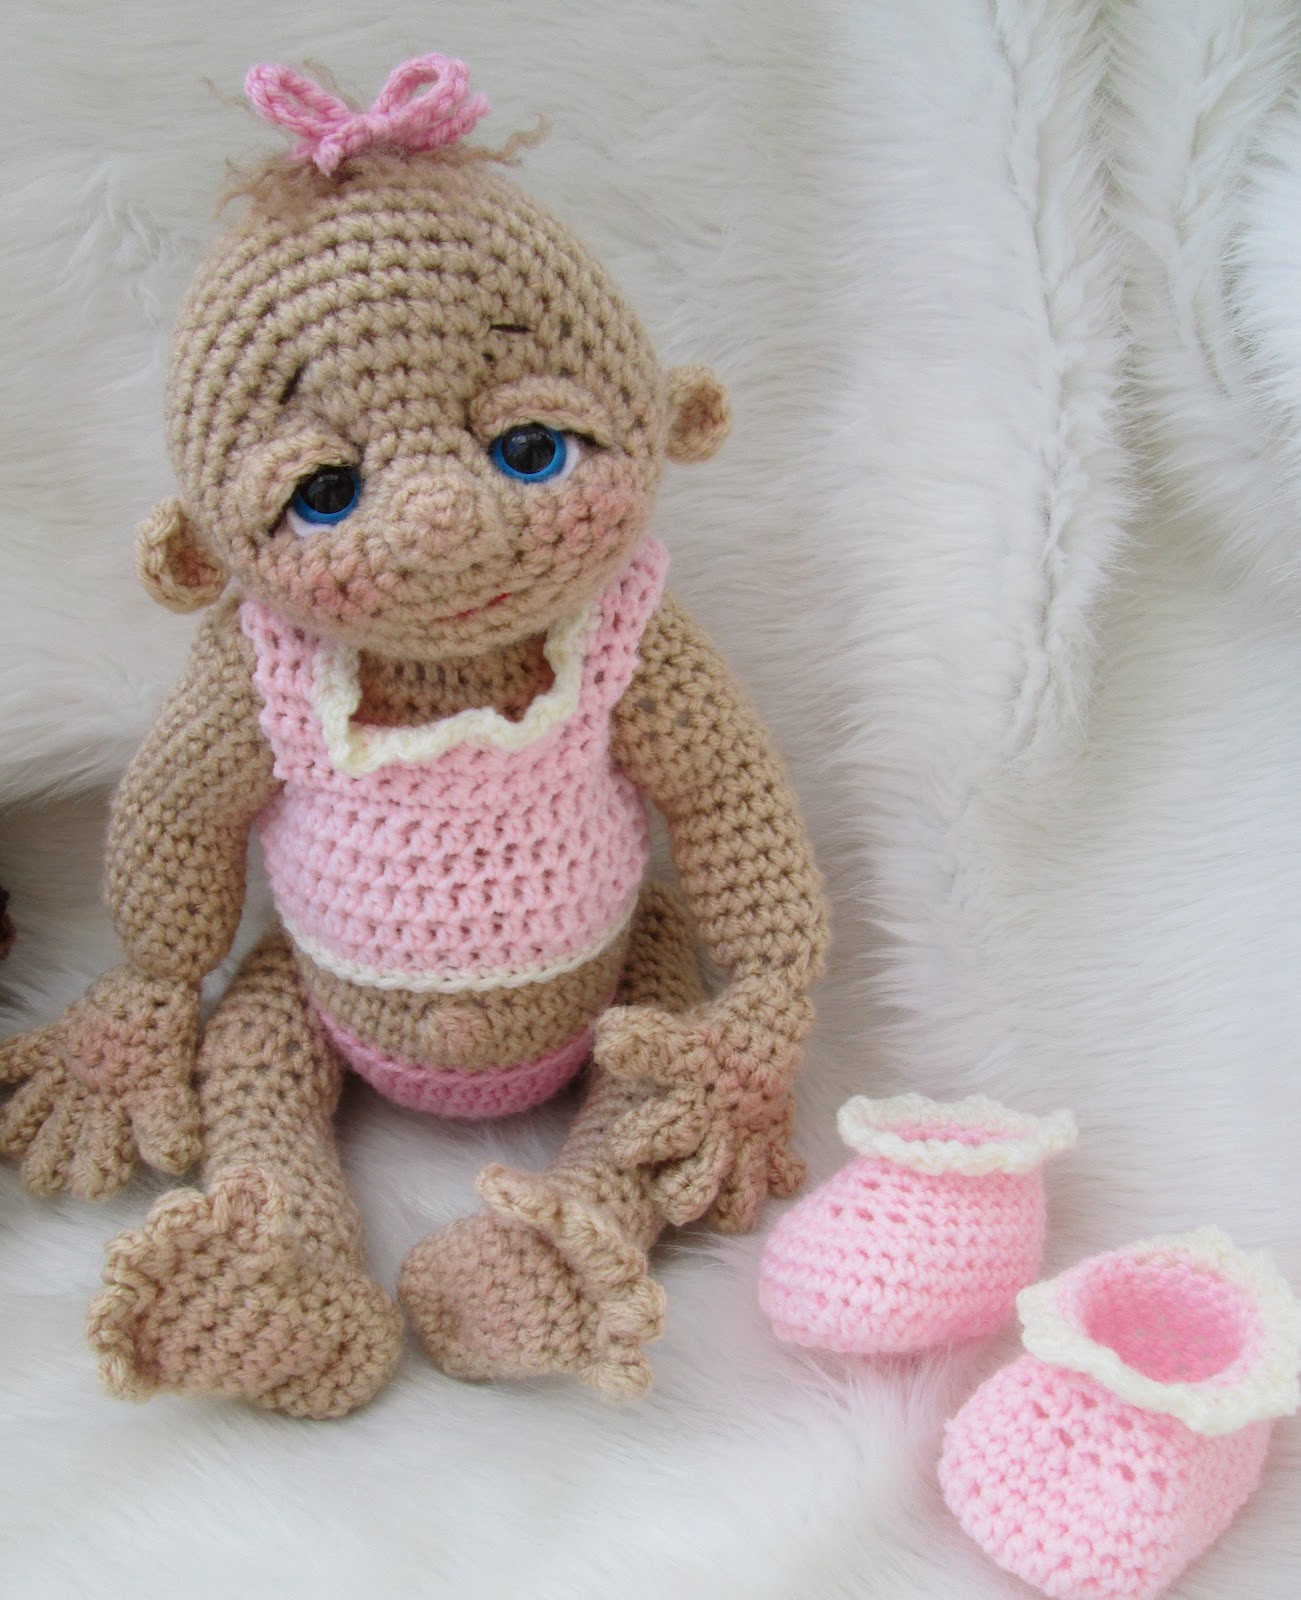 Crochet Doll Inspirational Wool and Whims so Cute Baby Doll Has Arrived Of Delightful 47 Pictures Crochet Doll